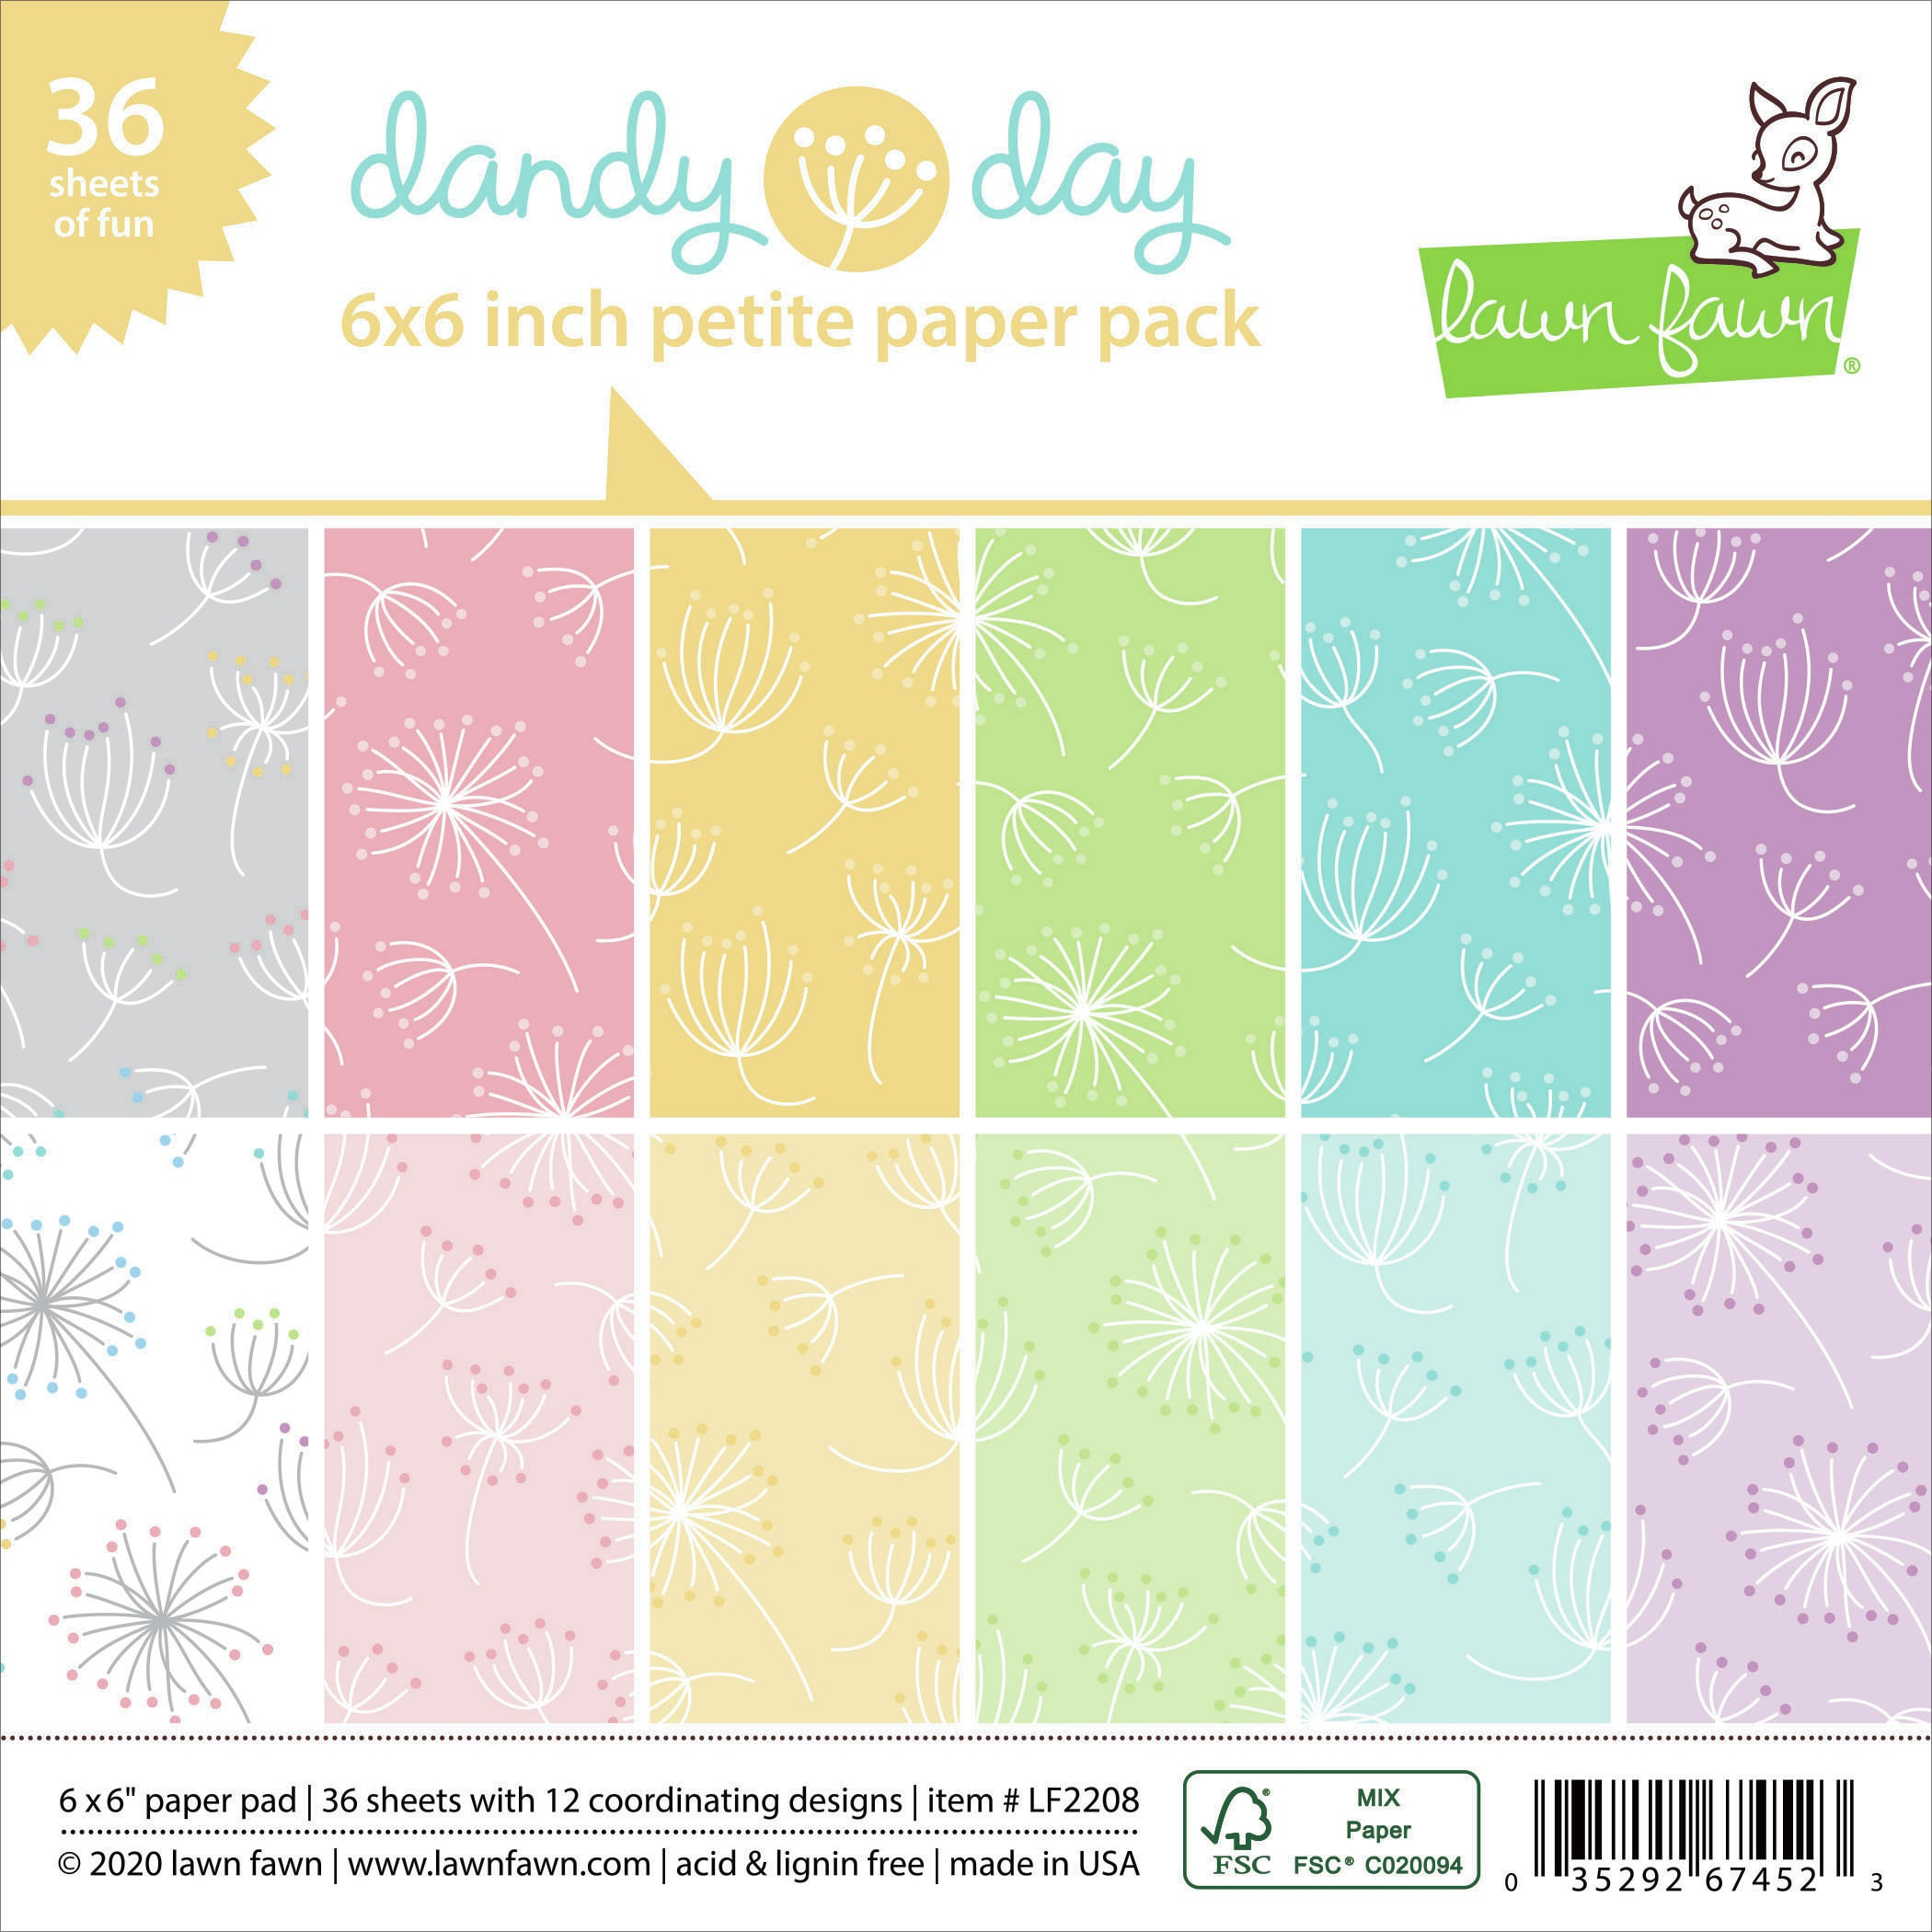 Lawn Fawn Single-Sided Petite Paper Pack 6X6 36/Pkg-Dandy Day, 12 Designs/3 Ea...